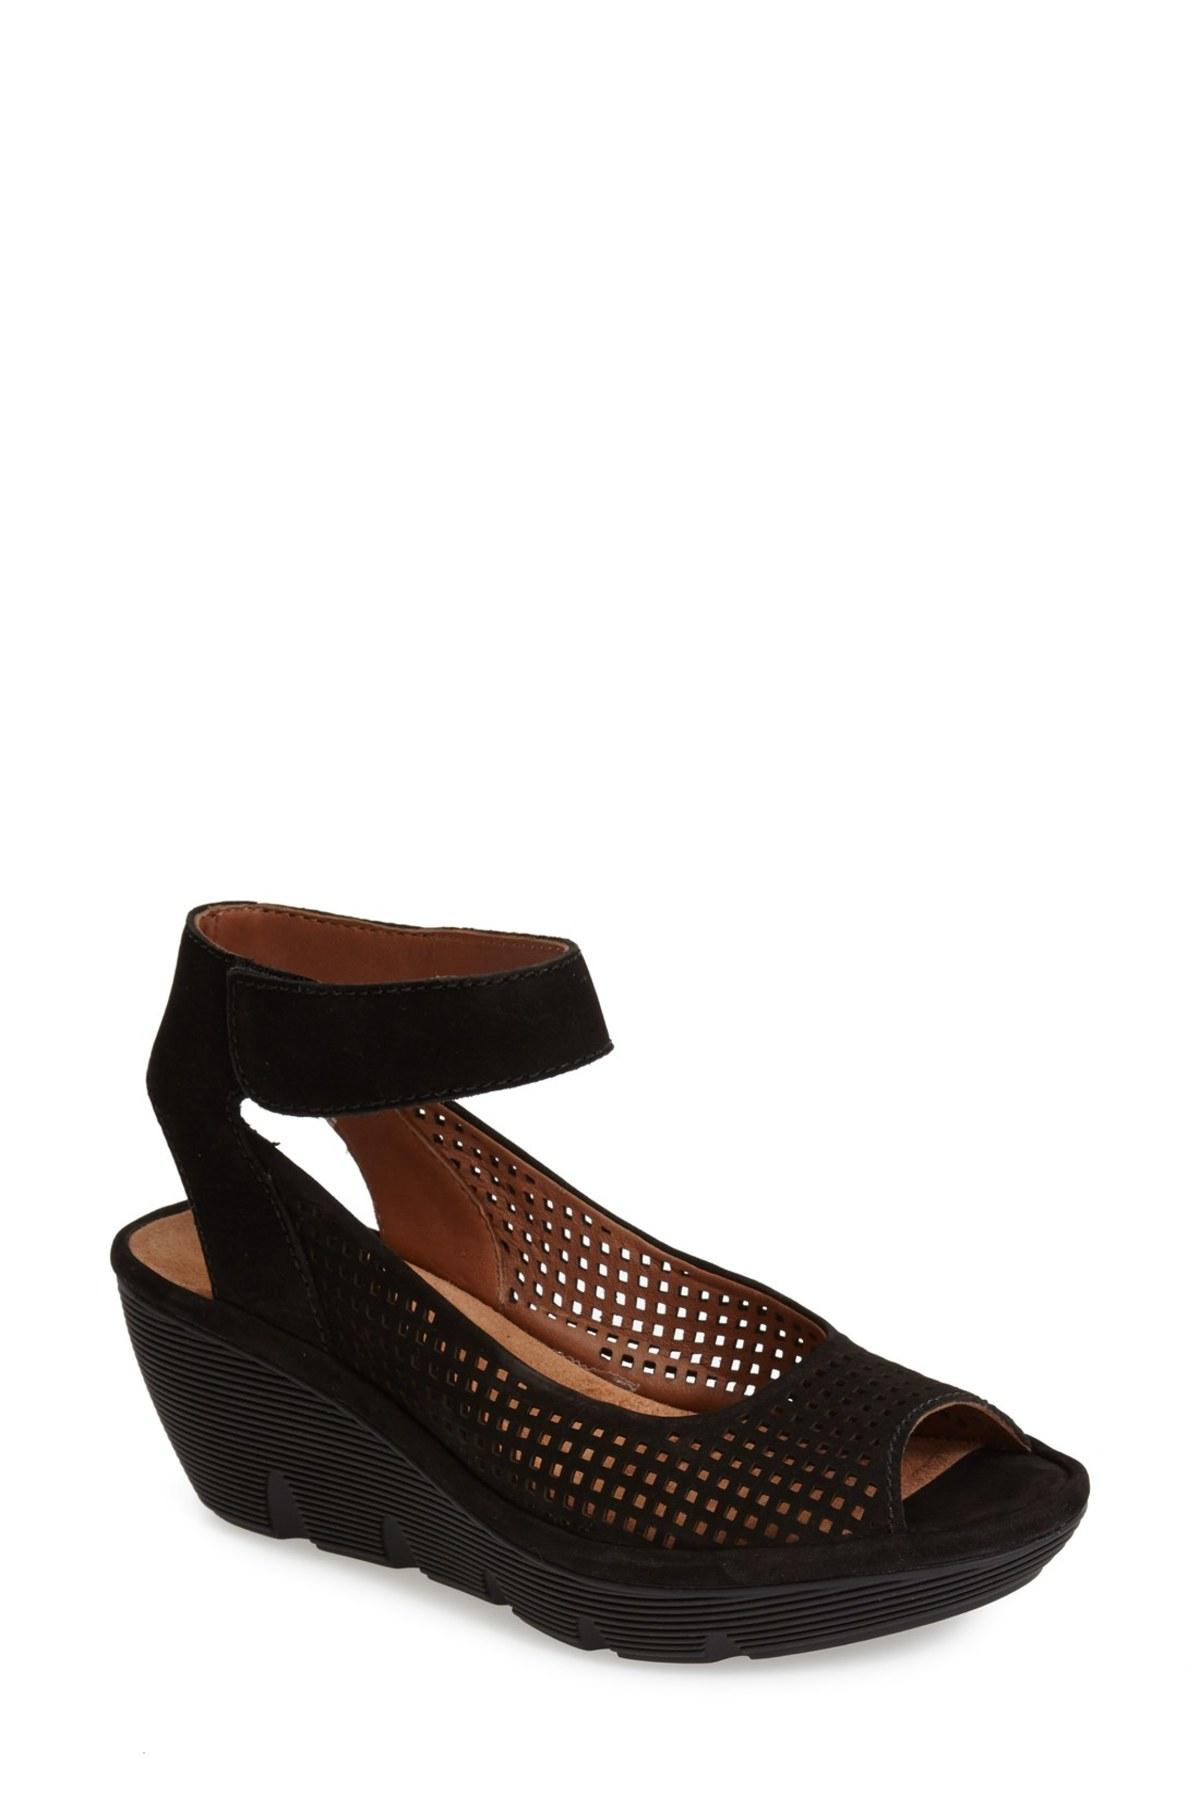 Lyst Clarks Clarene Prima Leather Wedge Sandal In Black